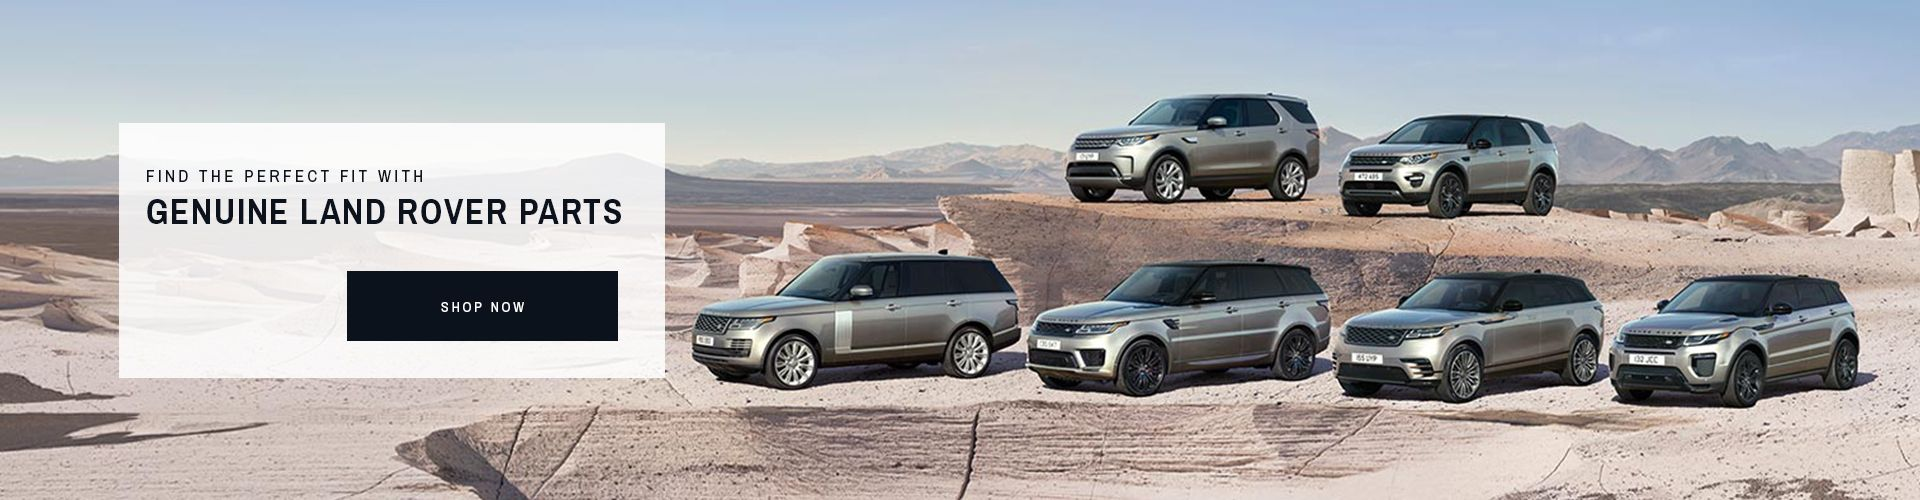 OEM Land Rover Parts & Accessories